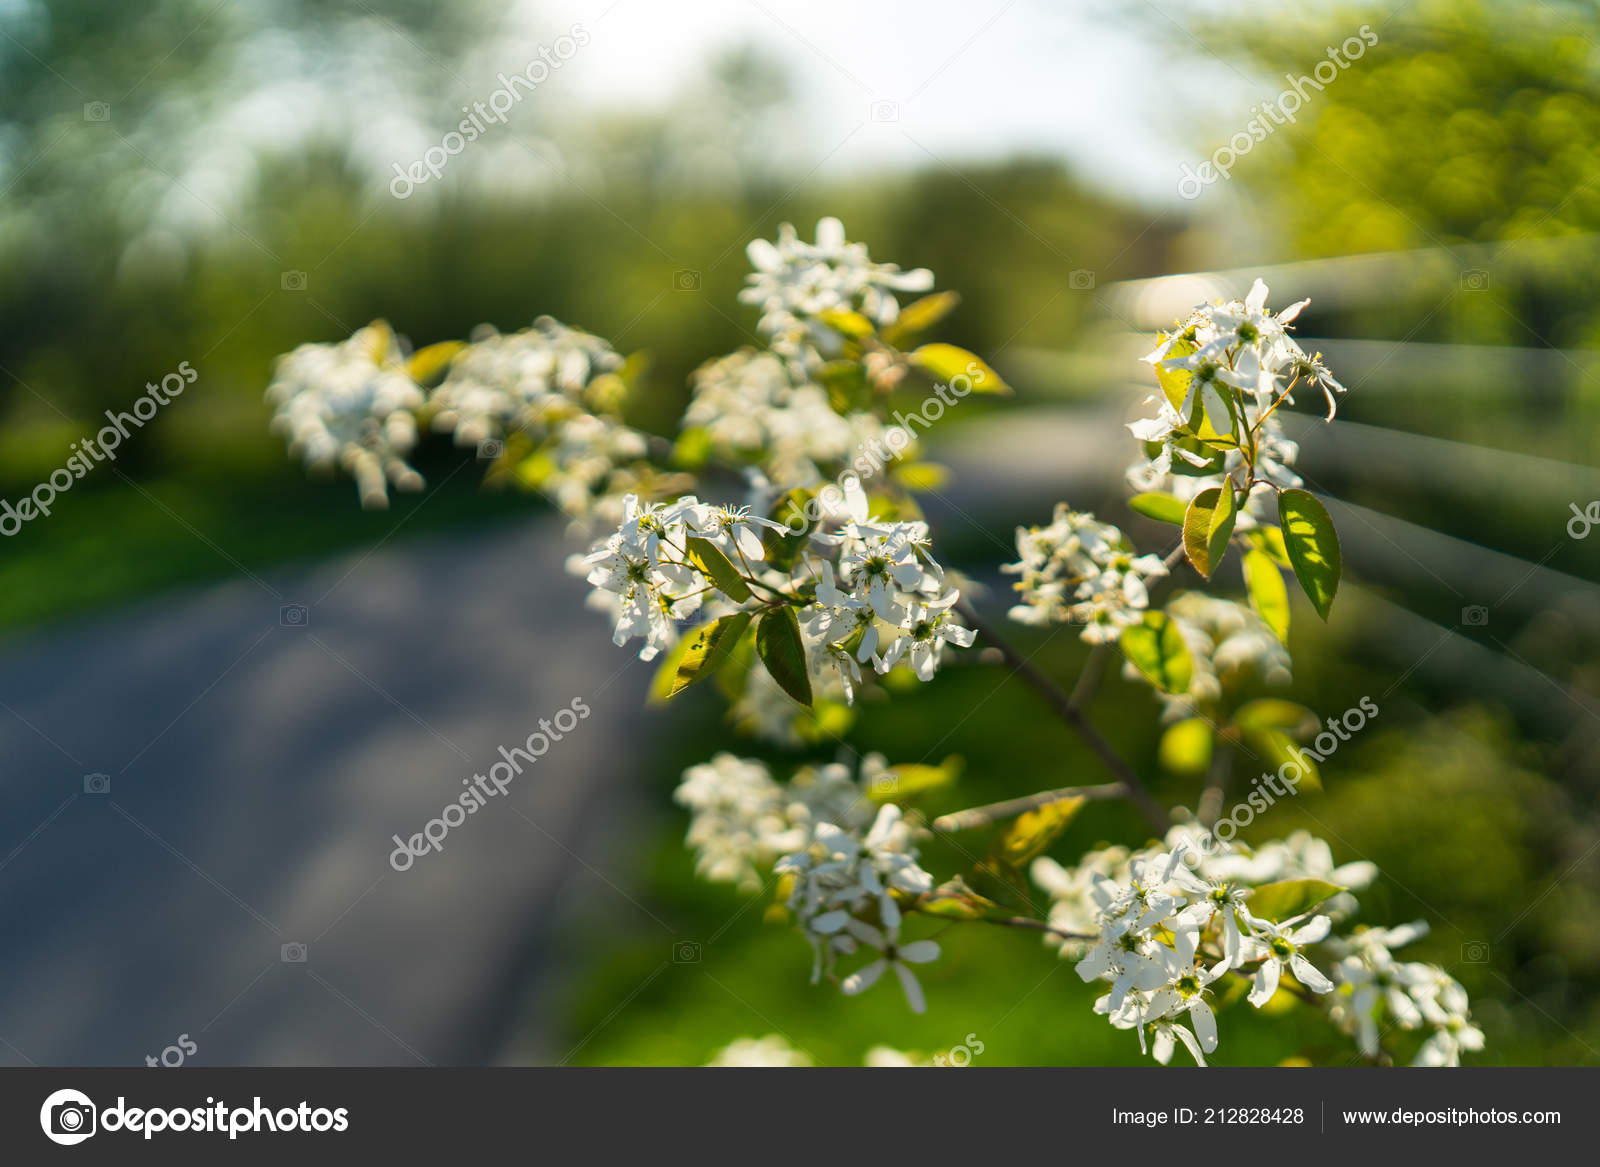 First spring flowering bushes trees white flowers amelanchier close first spring flowering bushes trees white flowers amelanchier close stock photo mightylinksfo